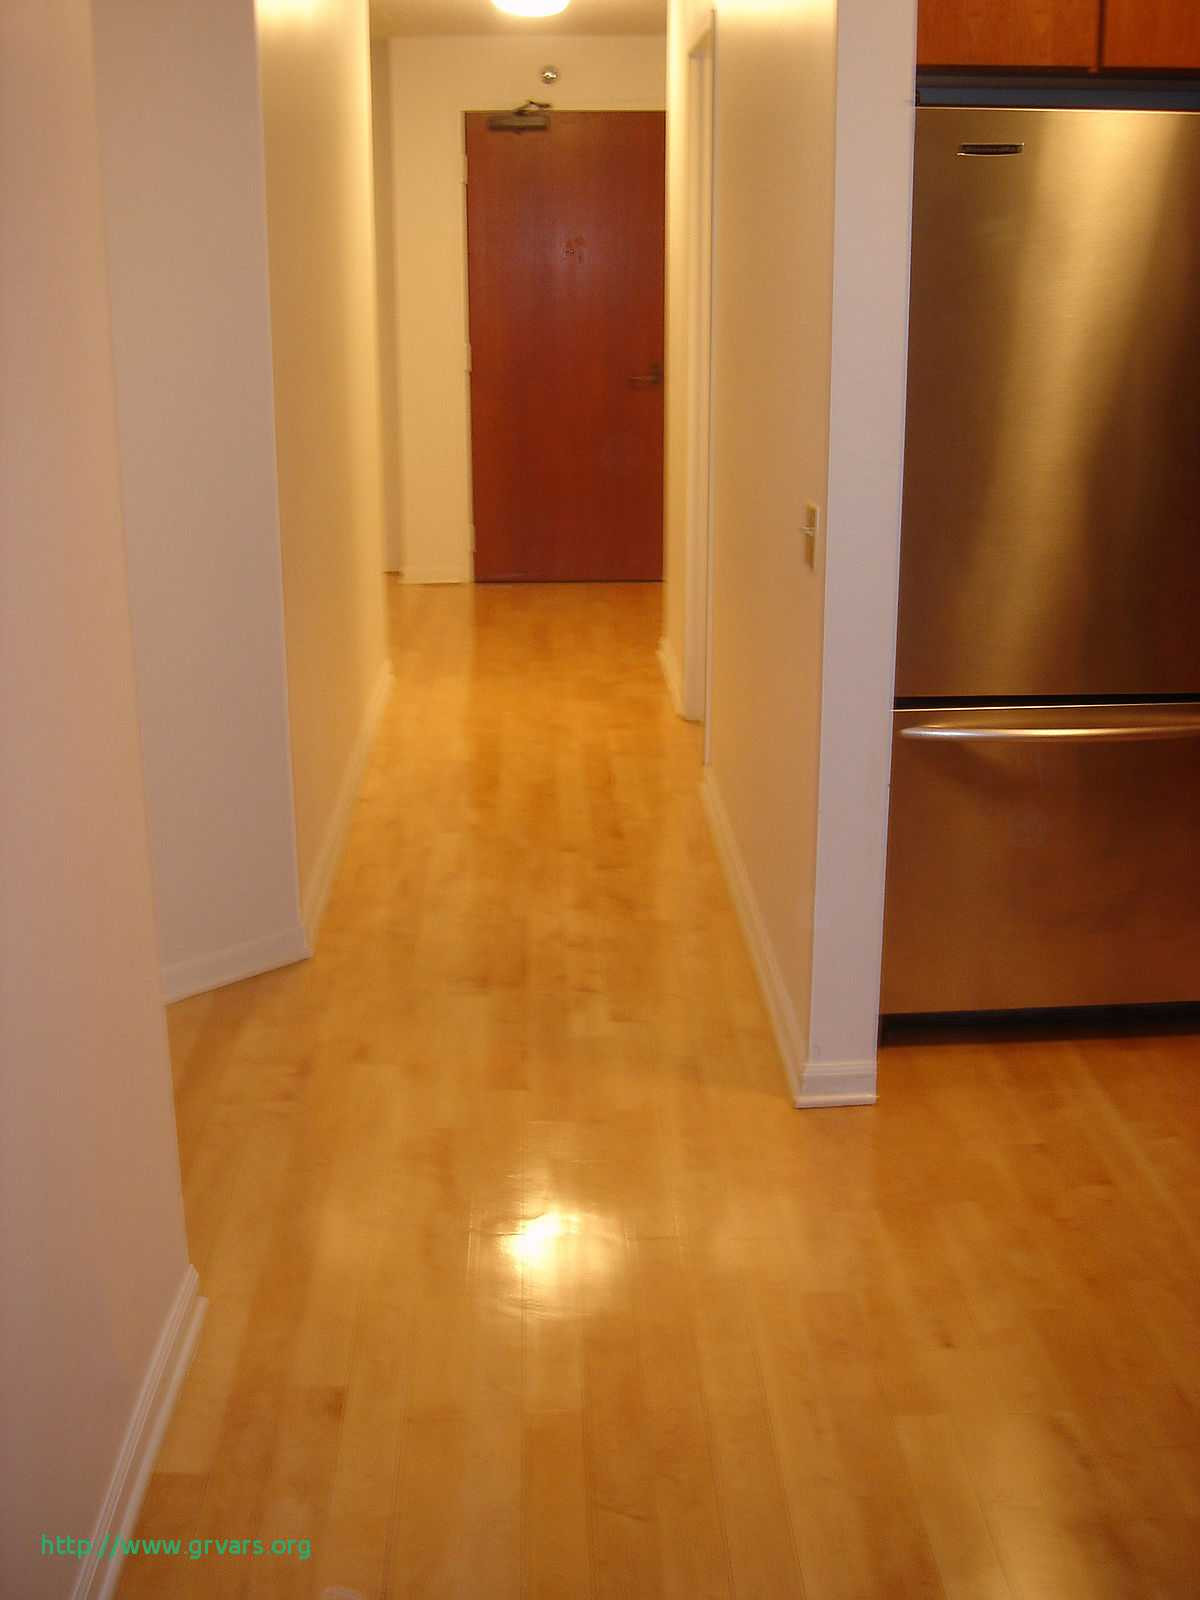 hardwood floor cleaning fayetteville nc of 21 a‰lagant flooring stores in st louis mo ideas blog inside full size of bedroom delightful discount hardwood flooring 8 1200px discount hardwood flooring van nuys